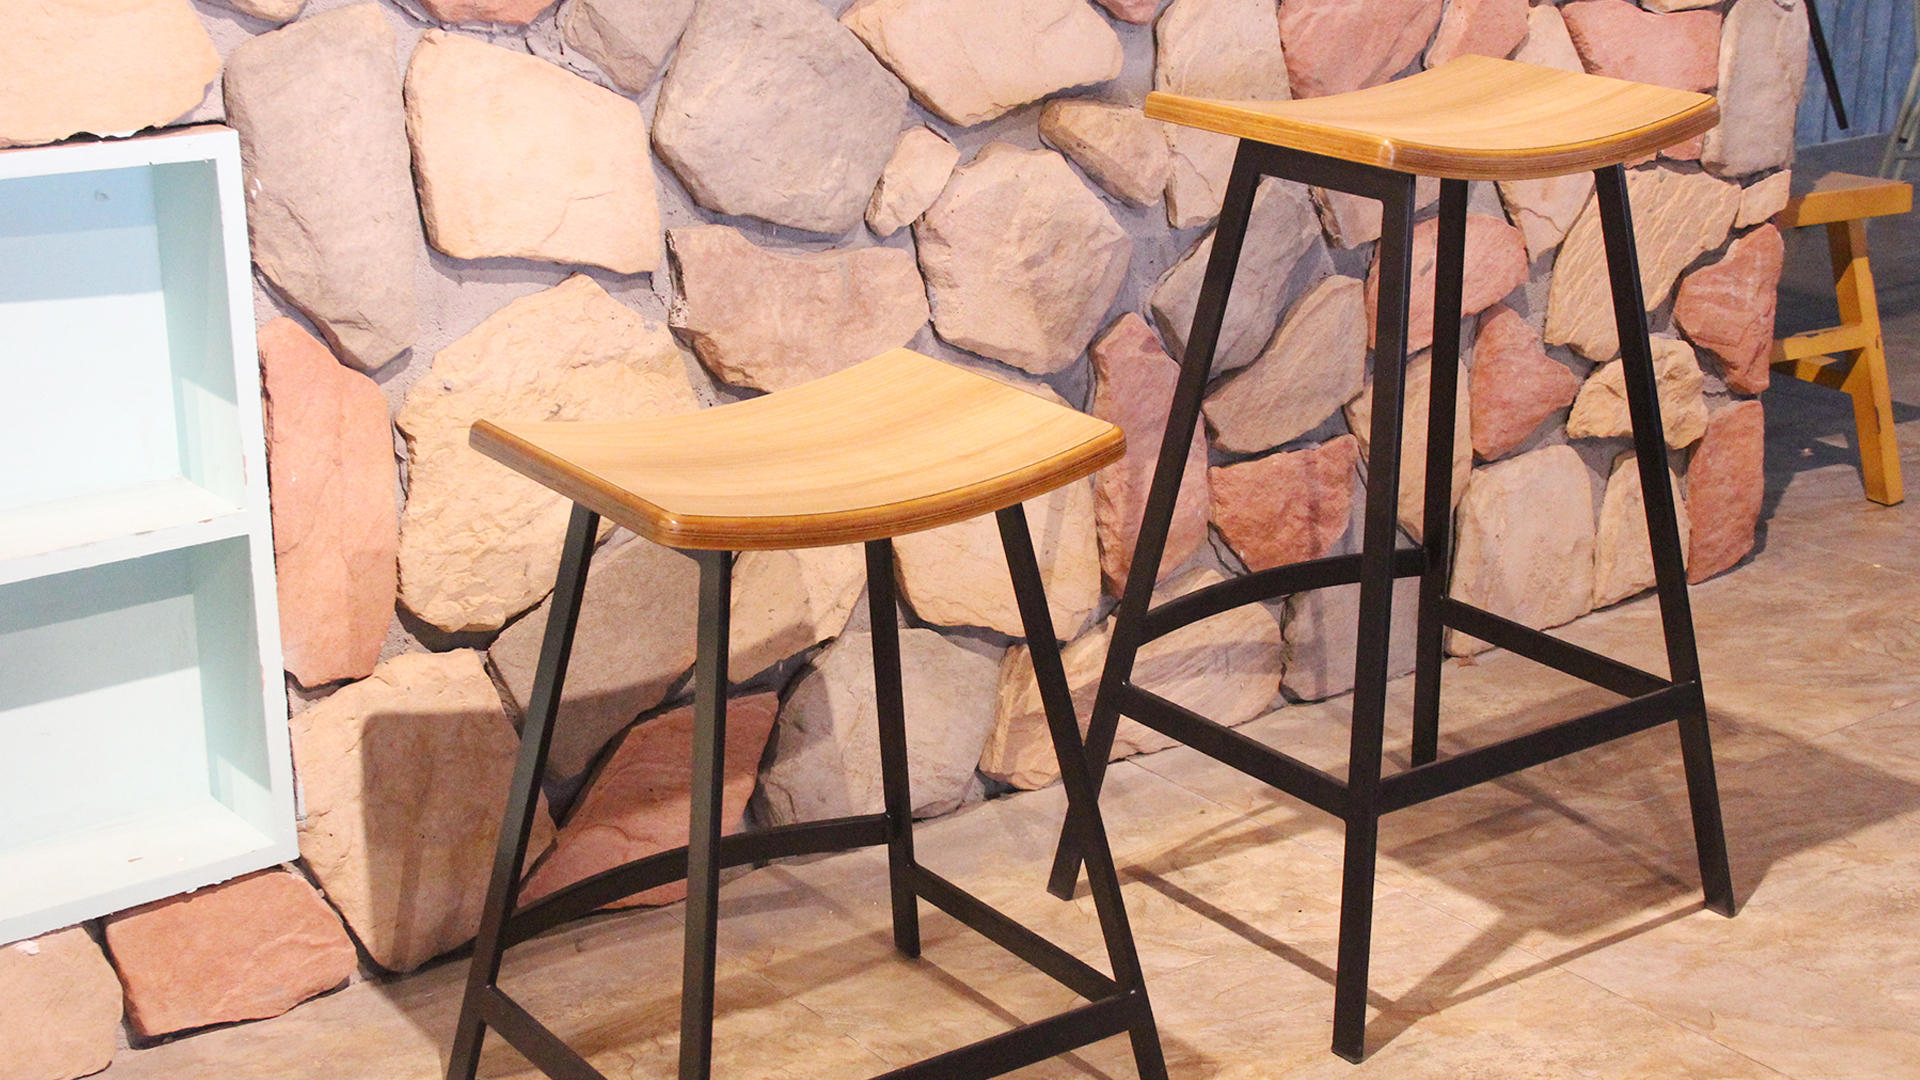 Counter High Stool French Tall Wooden Top Bar Stool 705B-H45(75)-STW